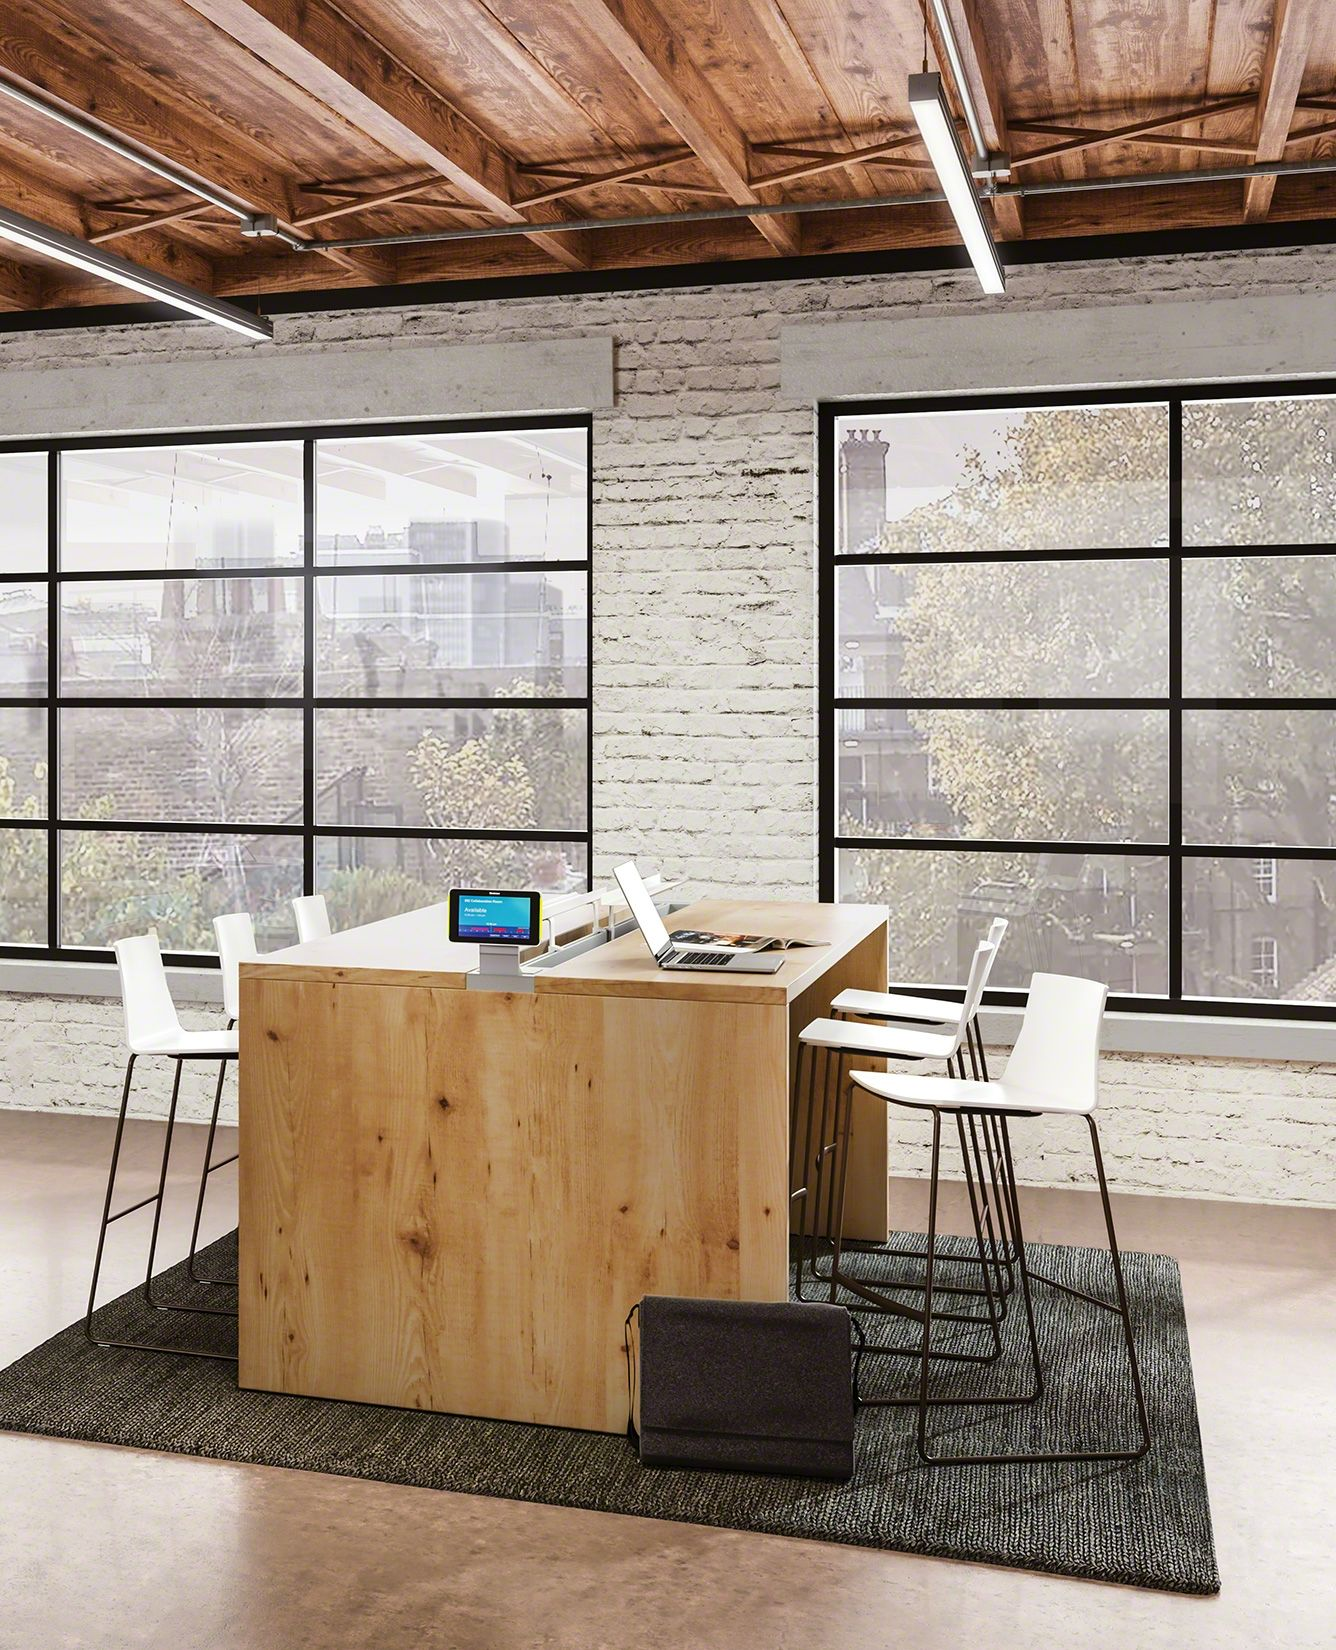 Small Office Interior Design: Design Inspiration + Ideas For Modern Office Workspaces